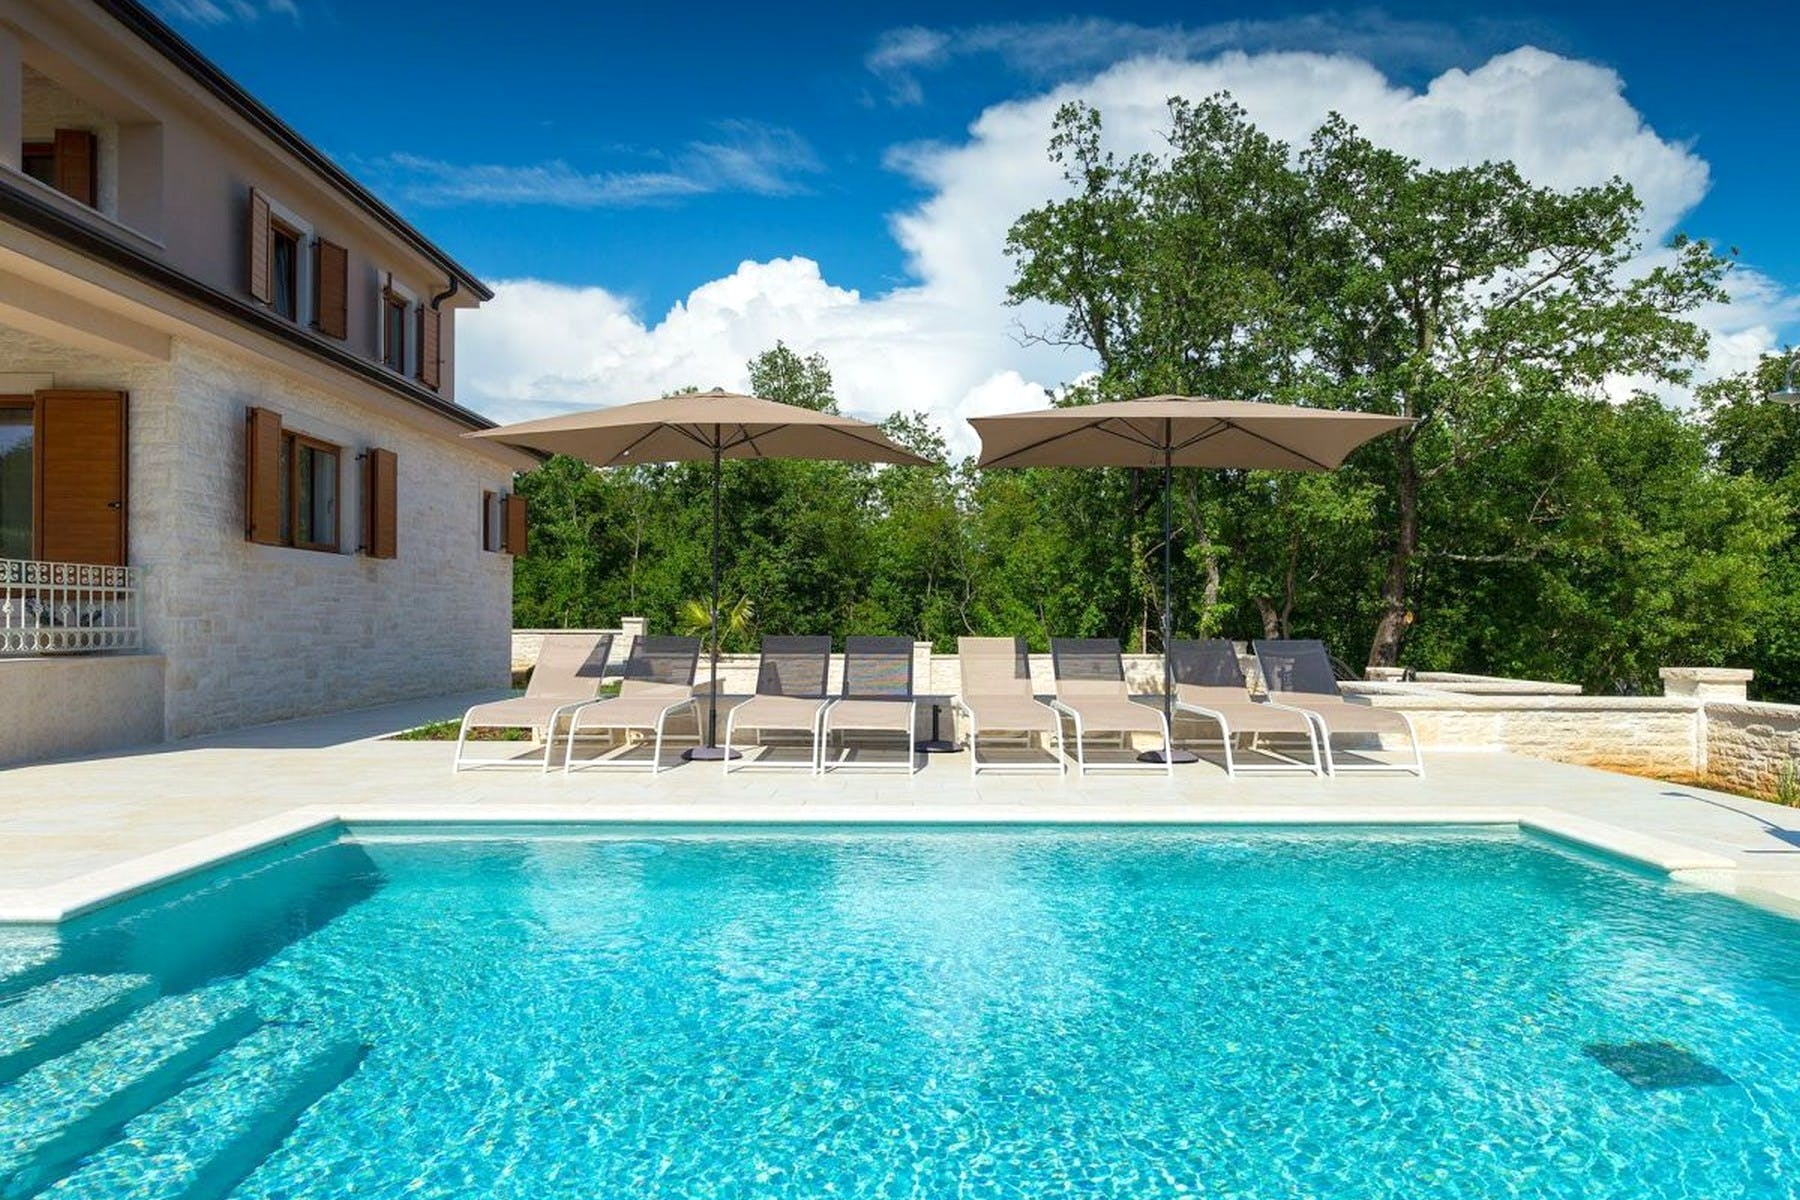 Spacious swimming pool with sundeck